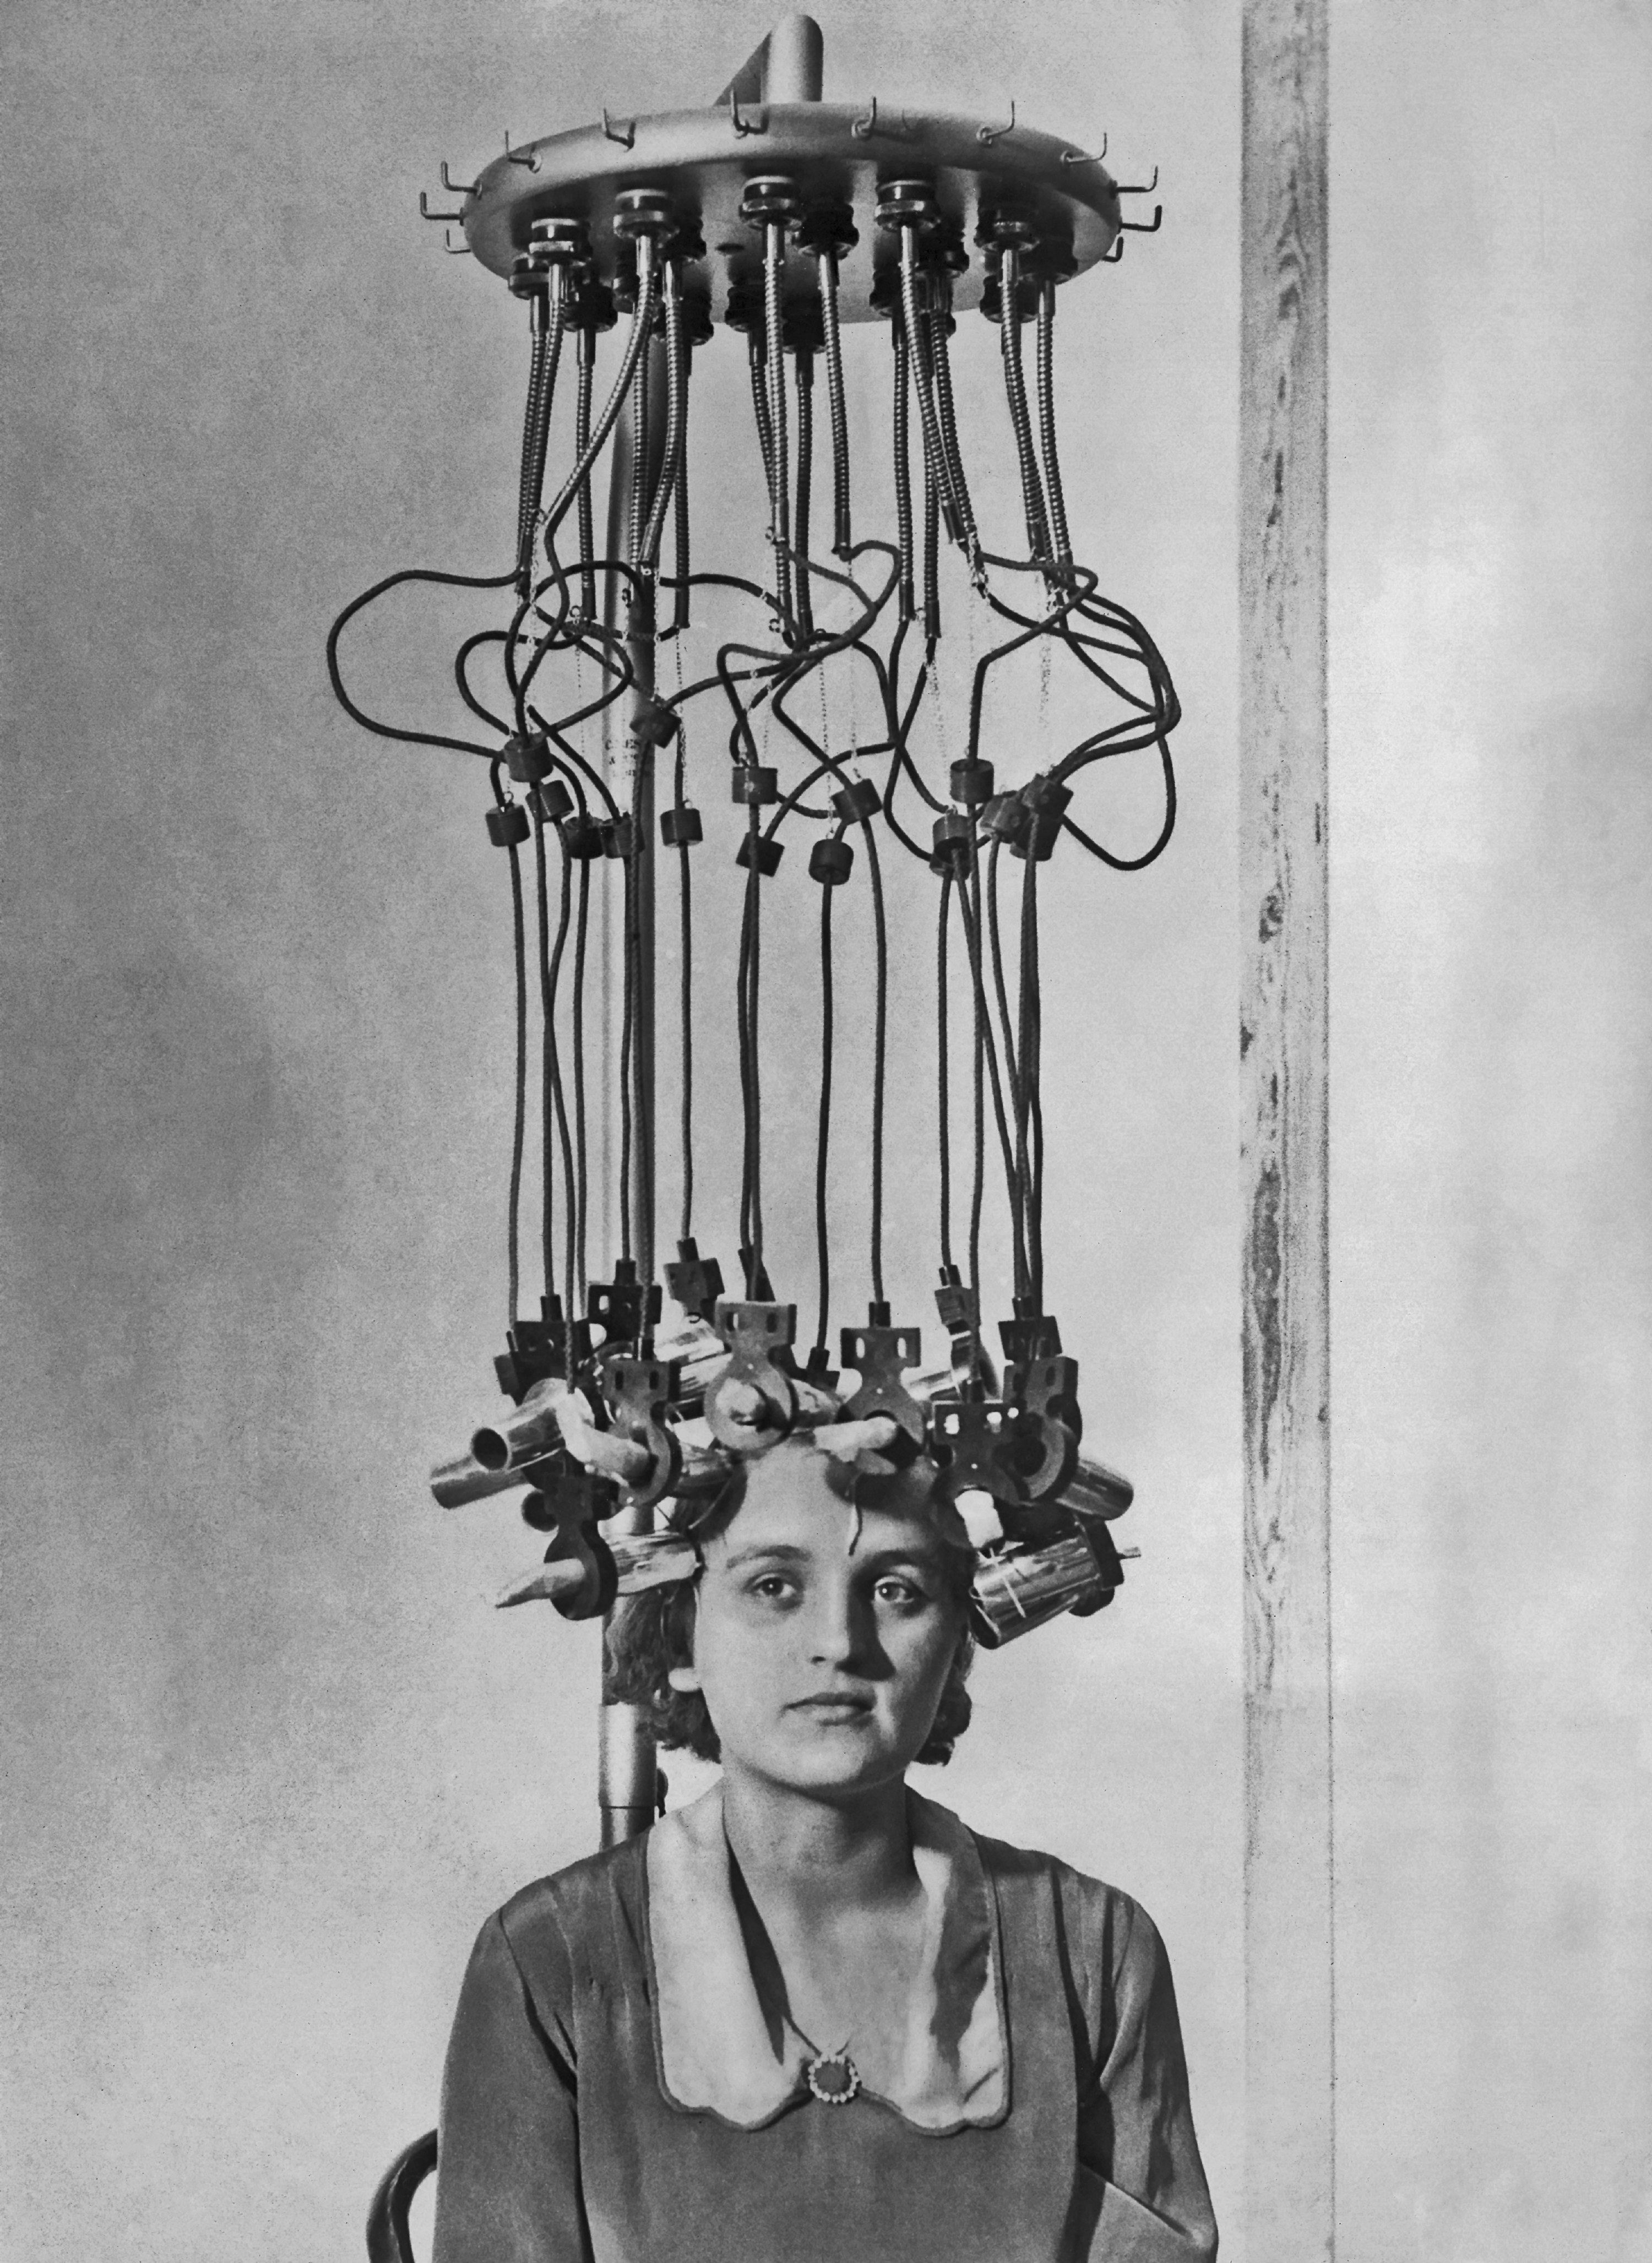 A model having her hair permed by a permanent wave machine